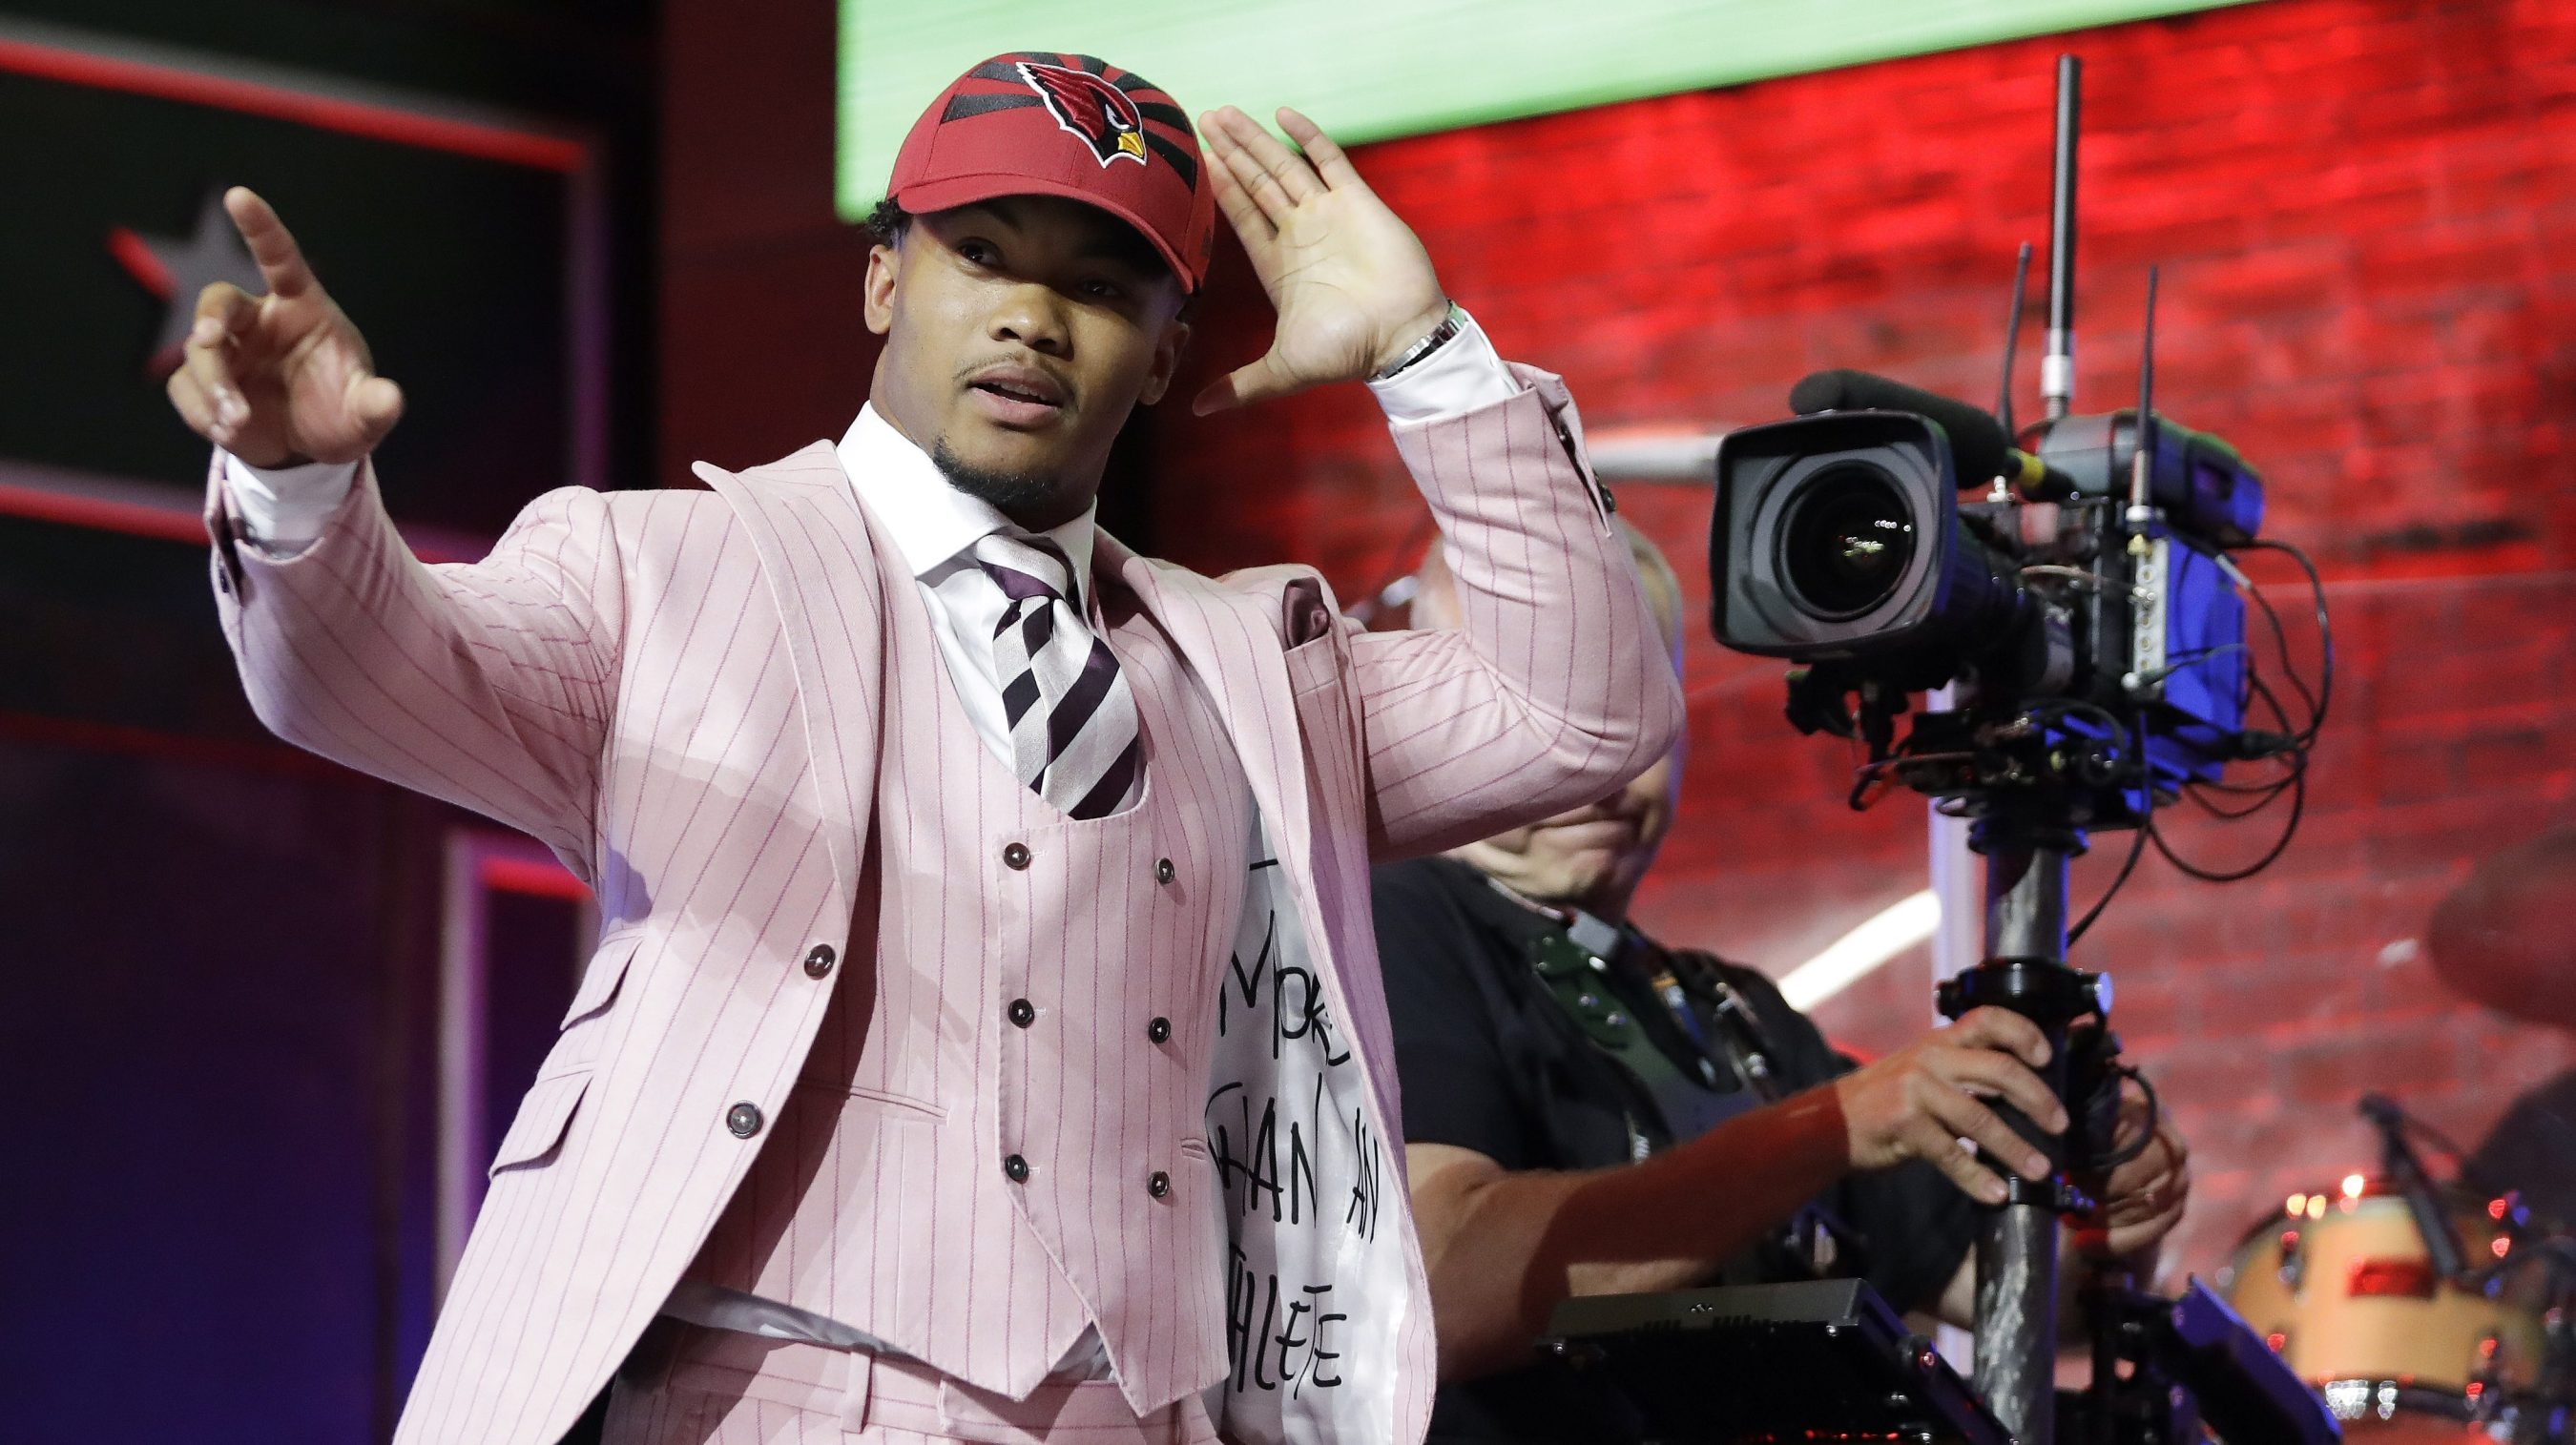 917ebc0dd1 Why Kyler Murray will face more pressure than most No. 1 picks